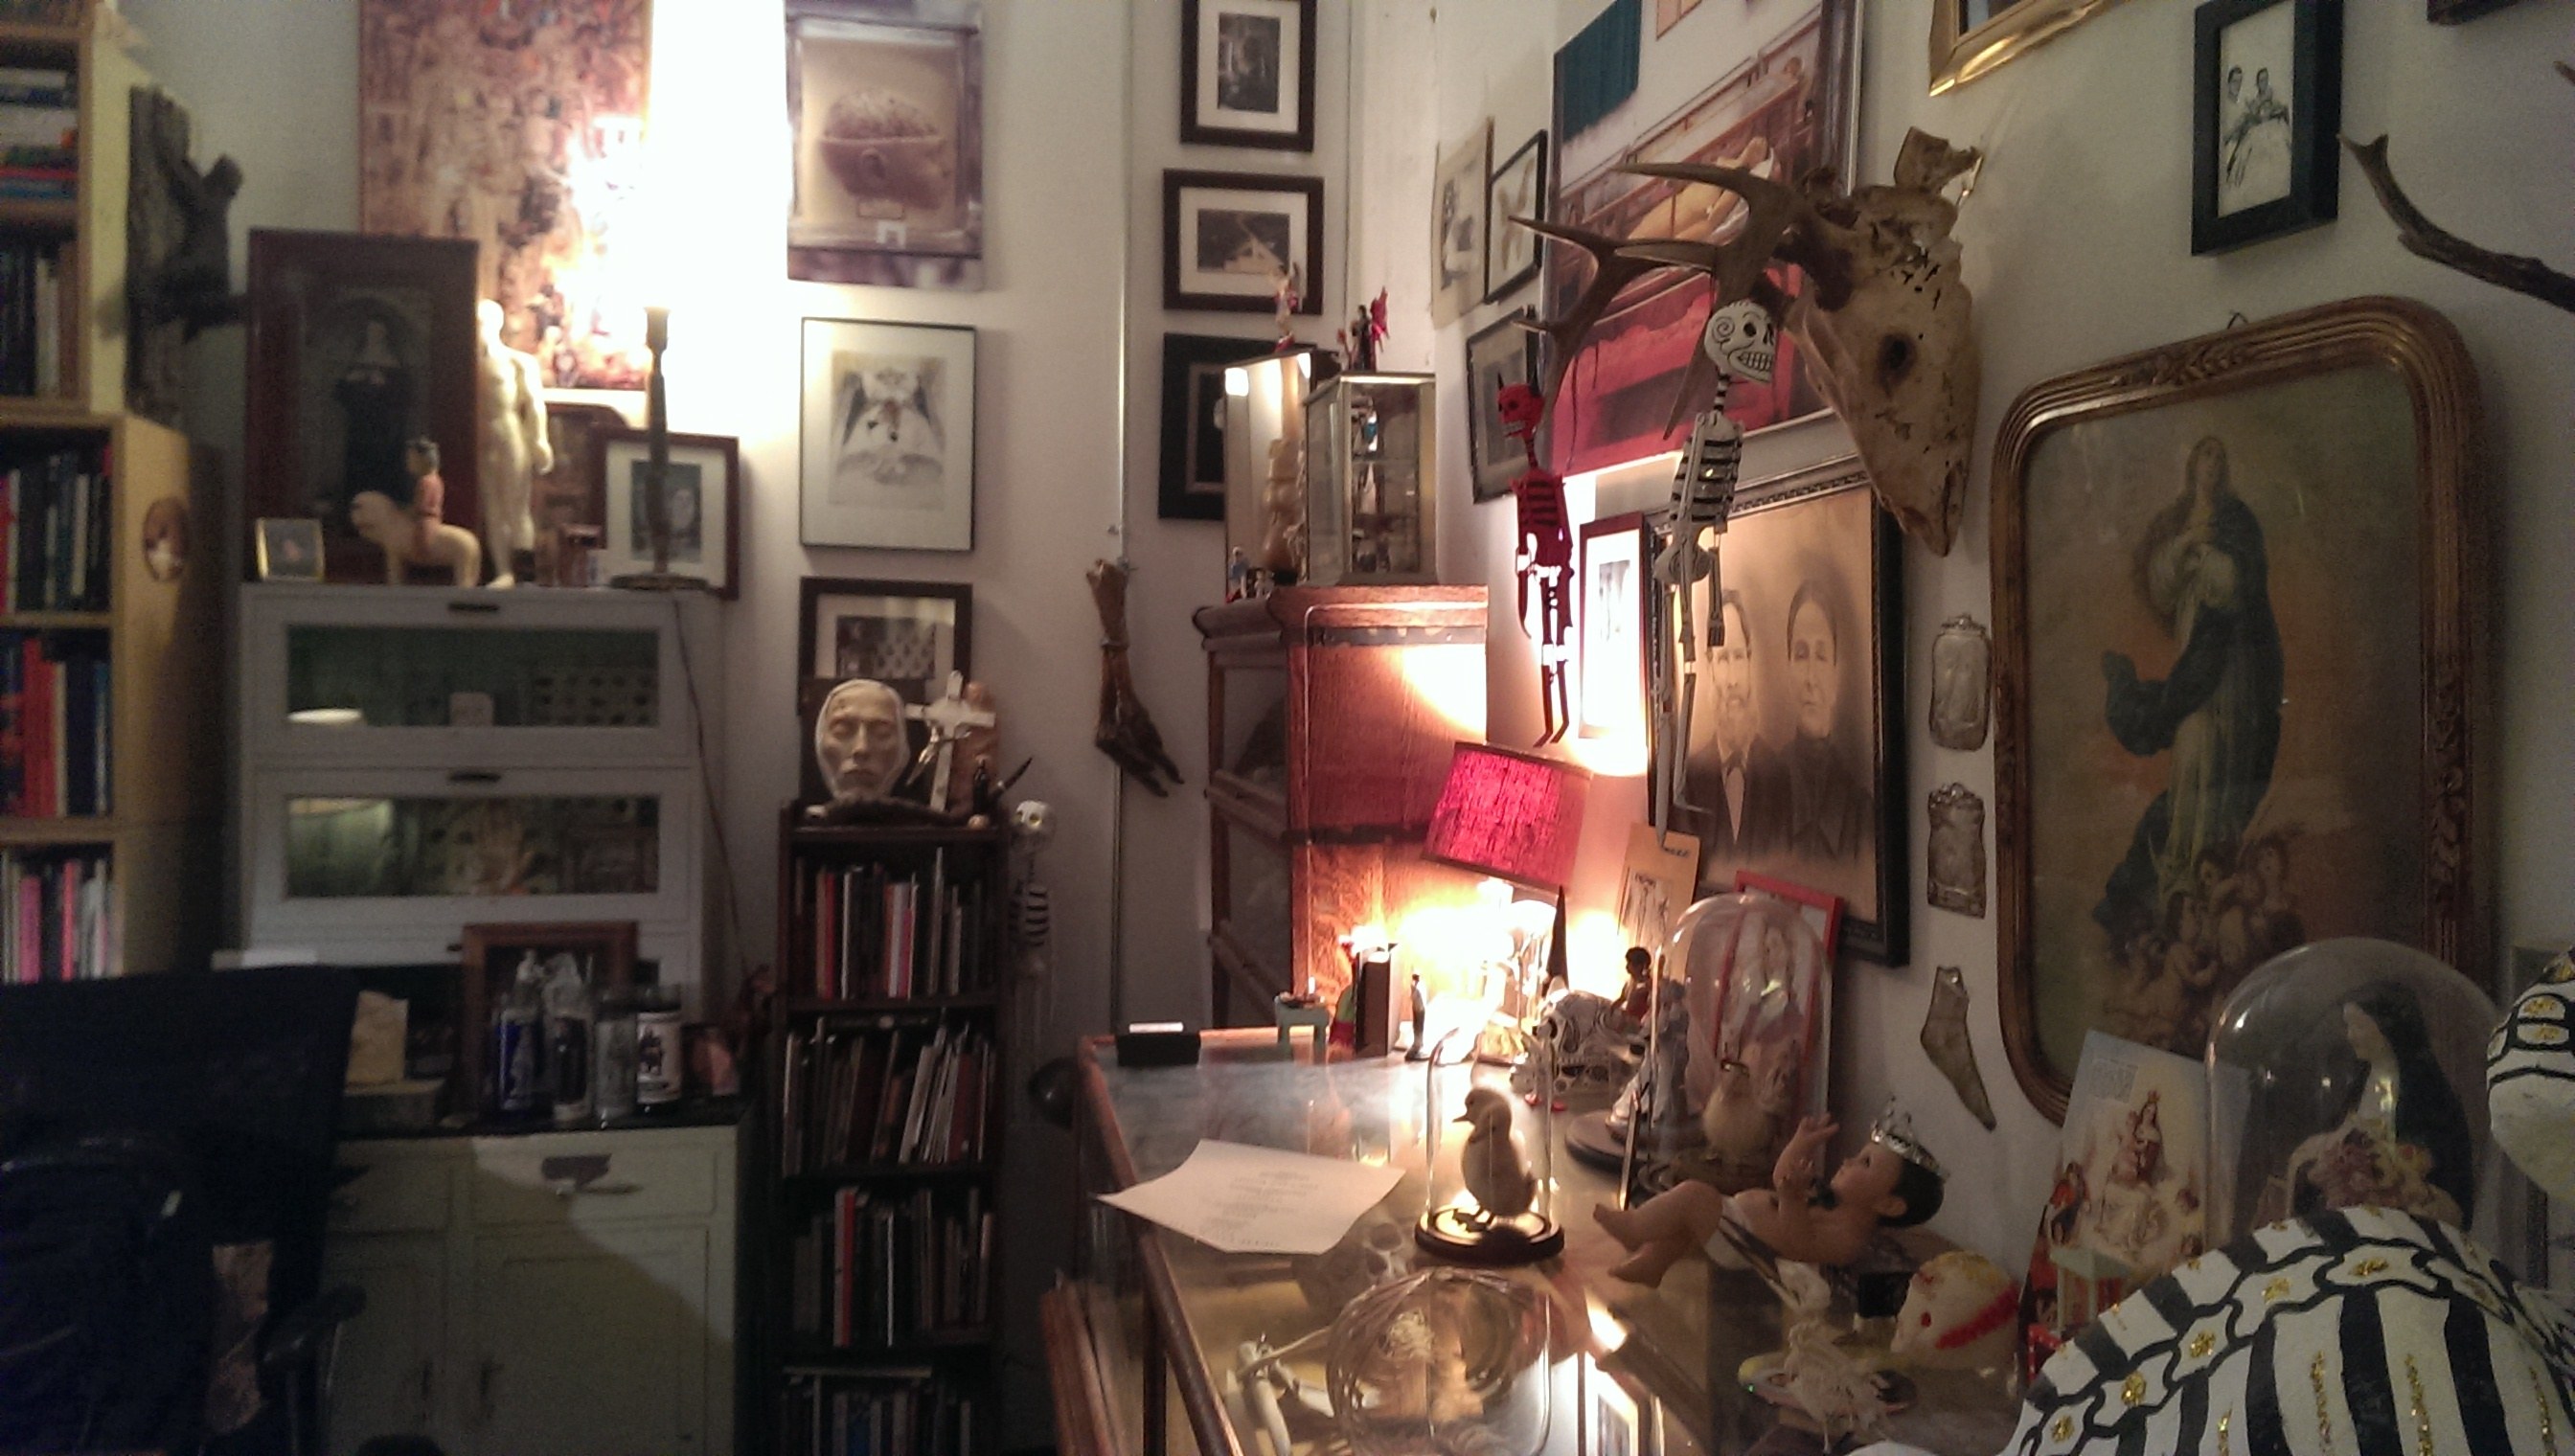 Next year, the Morbid Anatomy library is moving out of its cramped room in the Proteus Gowanus arts space to take over a three story former nightclub nearby. It will reopen as the Morbid Anatomy Museum.